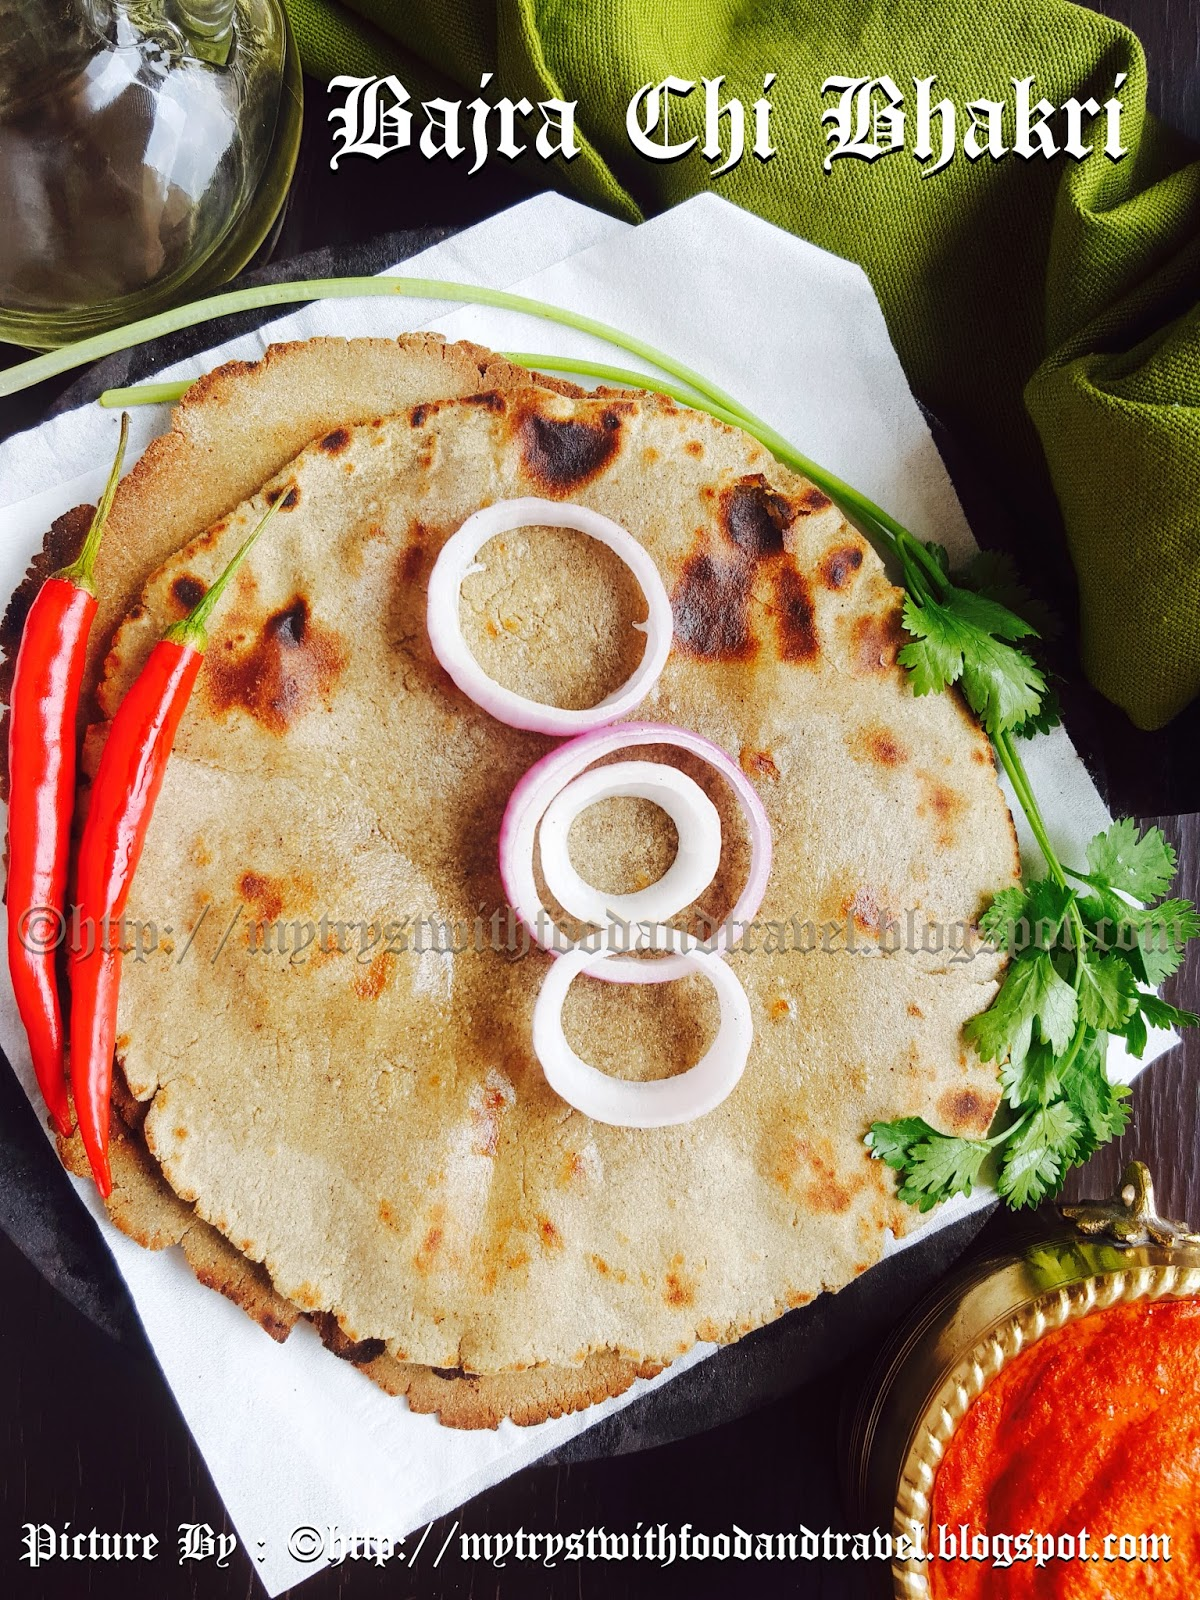 My tryst with food and travel bajra chi bhakri recipe bajra roti bajra chi bhakri recipe bajra roti recipe indian flat bread made with pearl millet flour recipe maharashtrian cuisine forumfinder Image collections